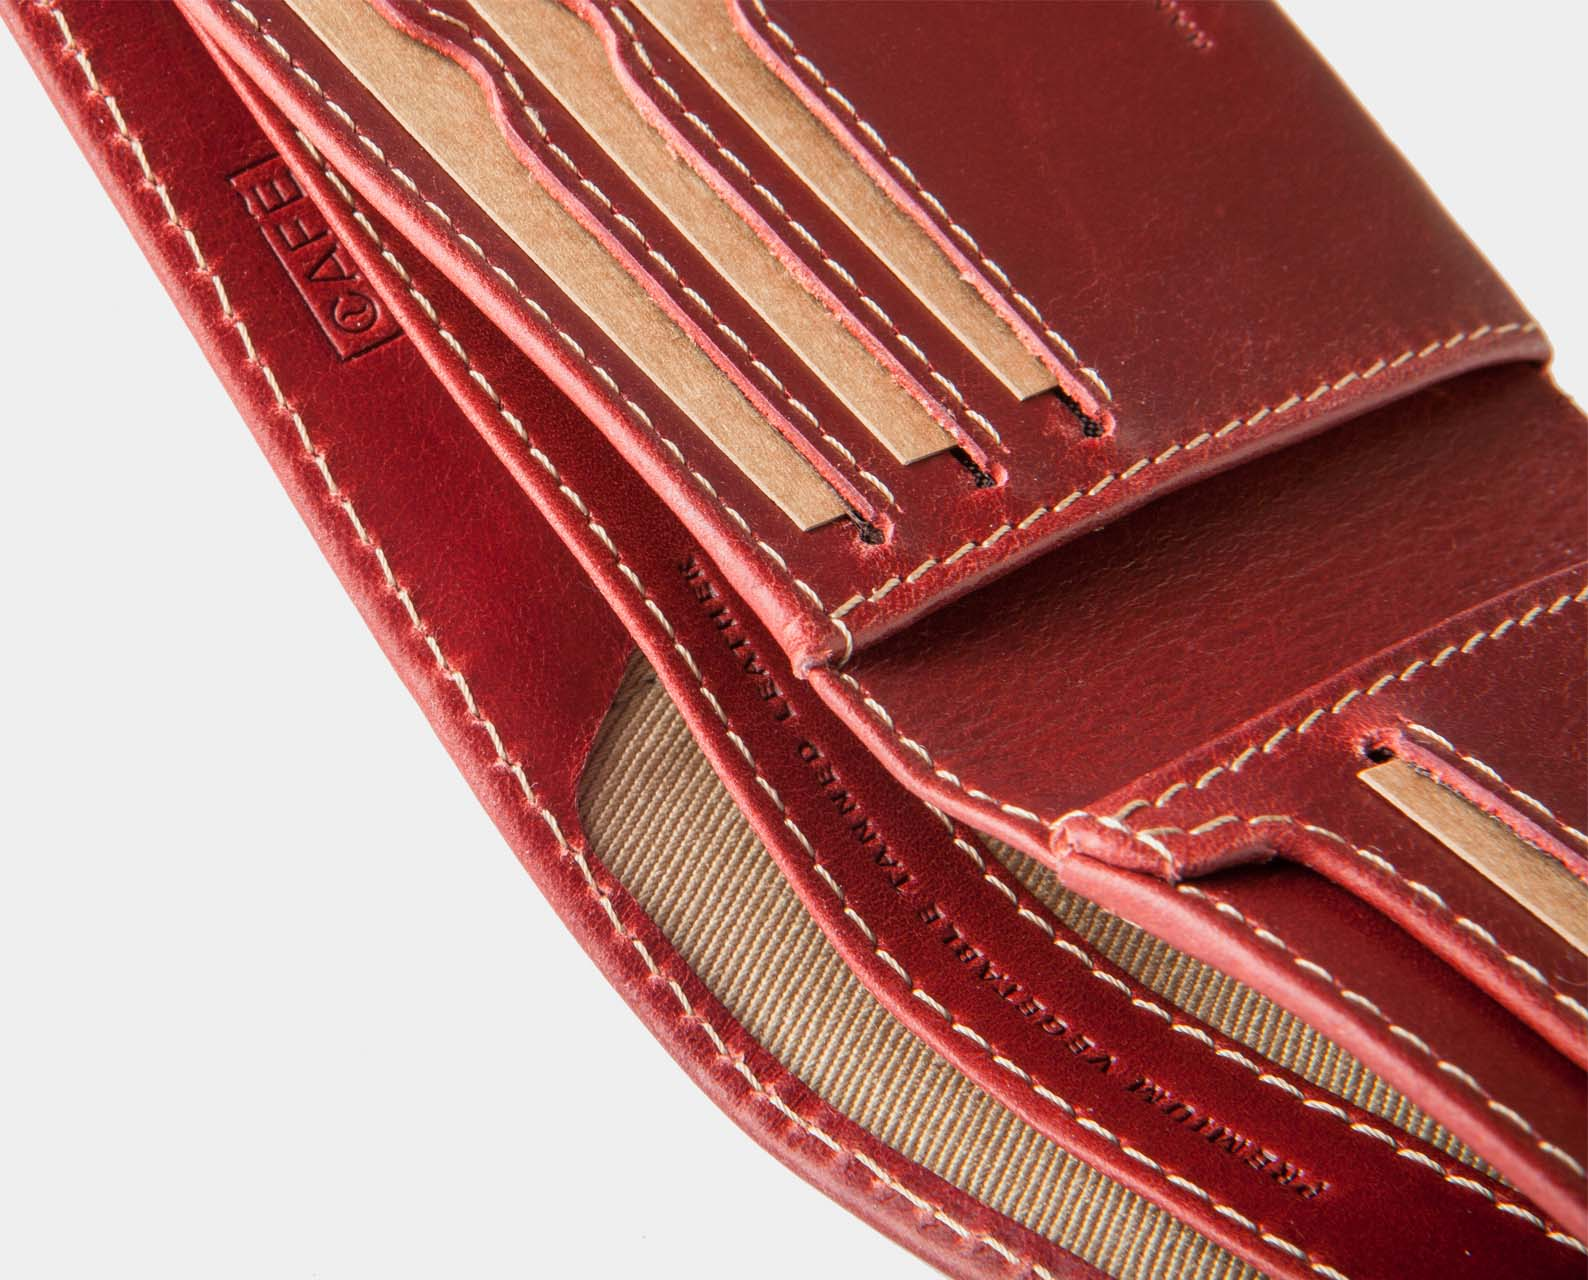 billfold wallet red for coins and bills